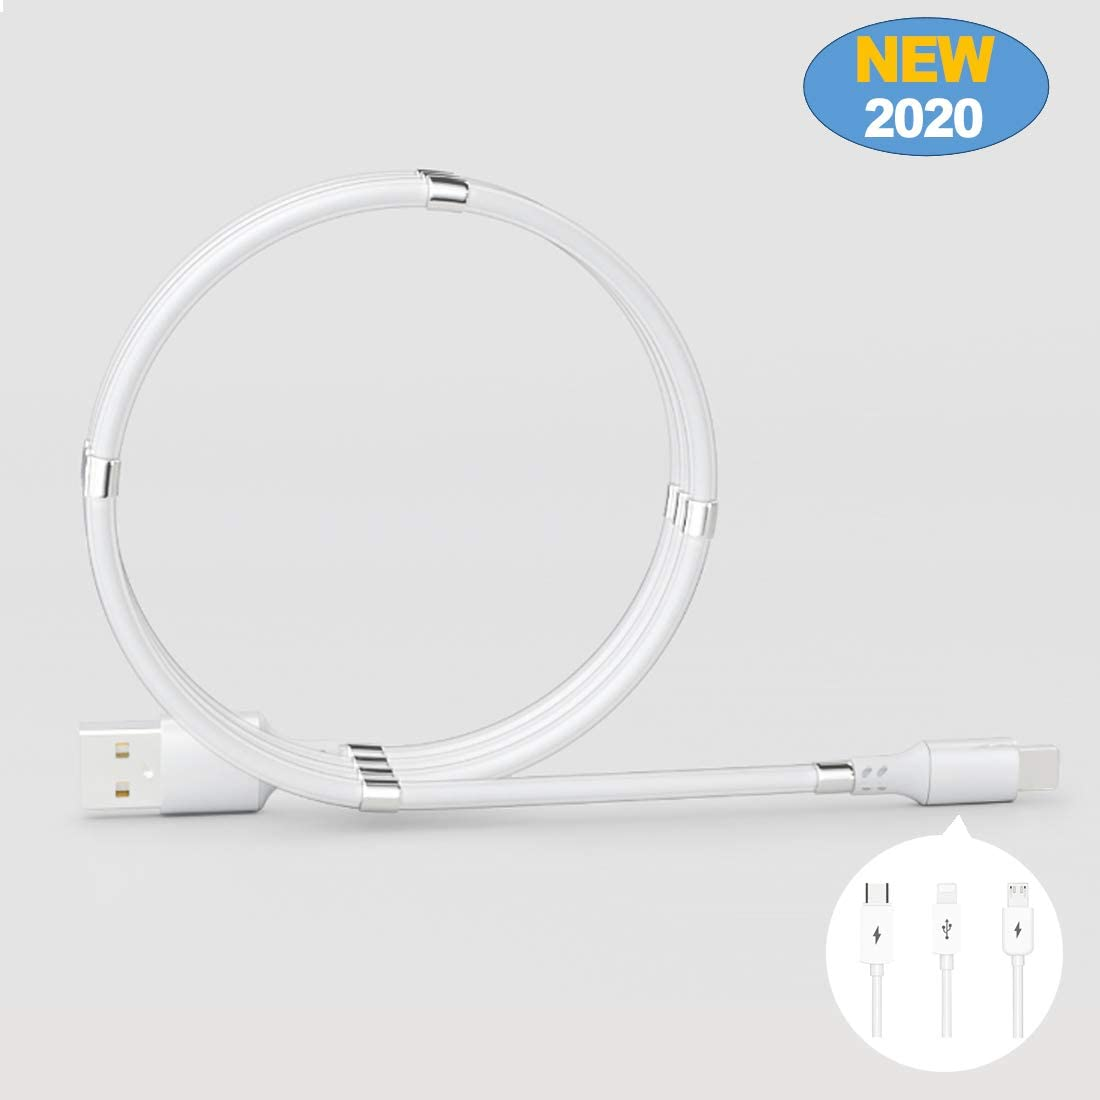 for Charging Phone//Android Phones Magnetic Auto Storage USB 2.0 Charger Cable with Carrying to Smartphone Port Mirco USB, White Headset and Tablets or Connecting PC for Transferring Files